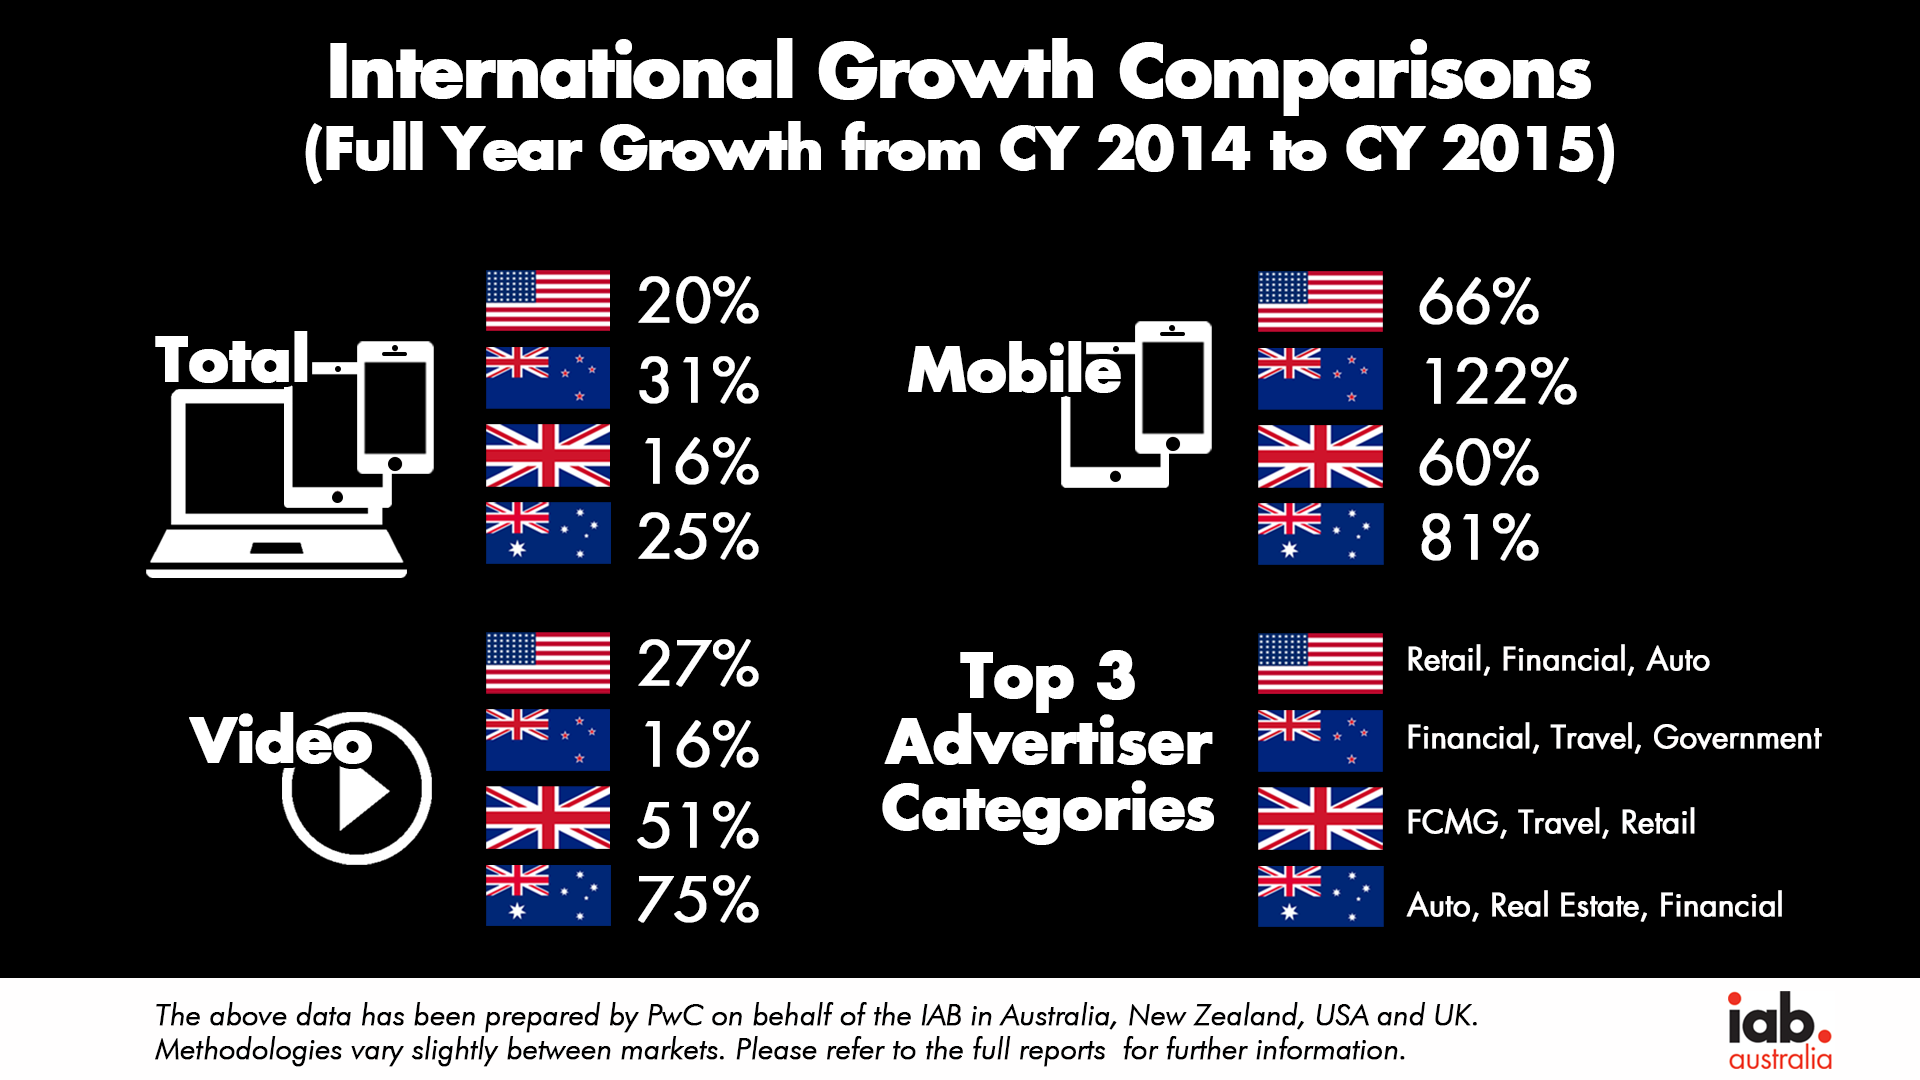 CY2015 International Growth